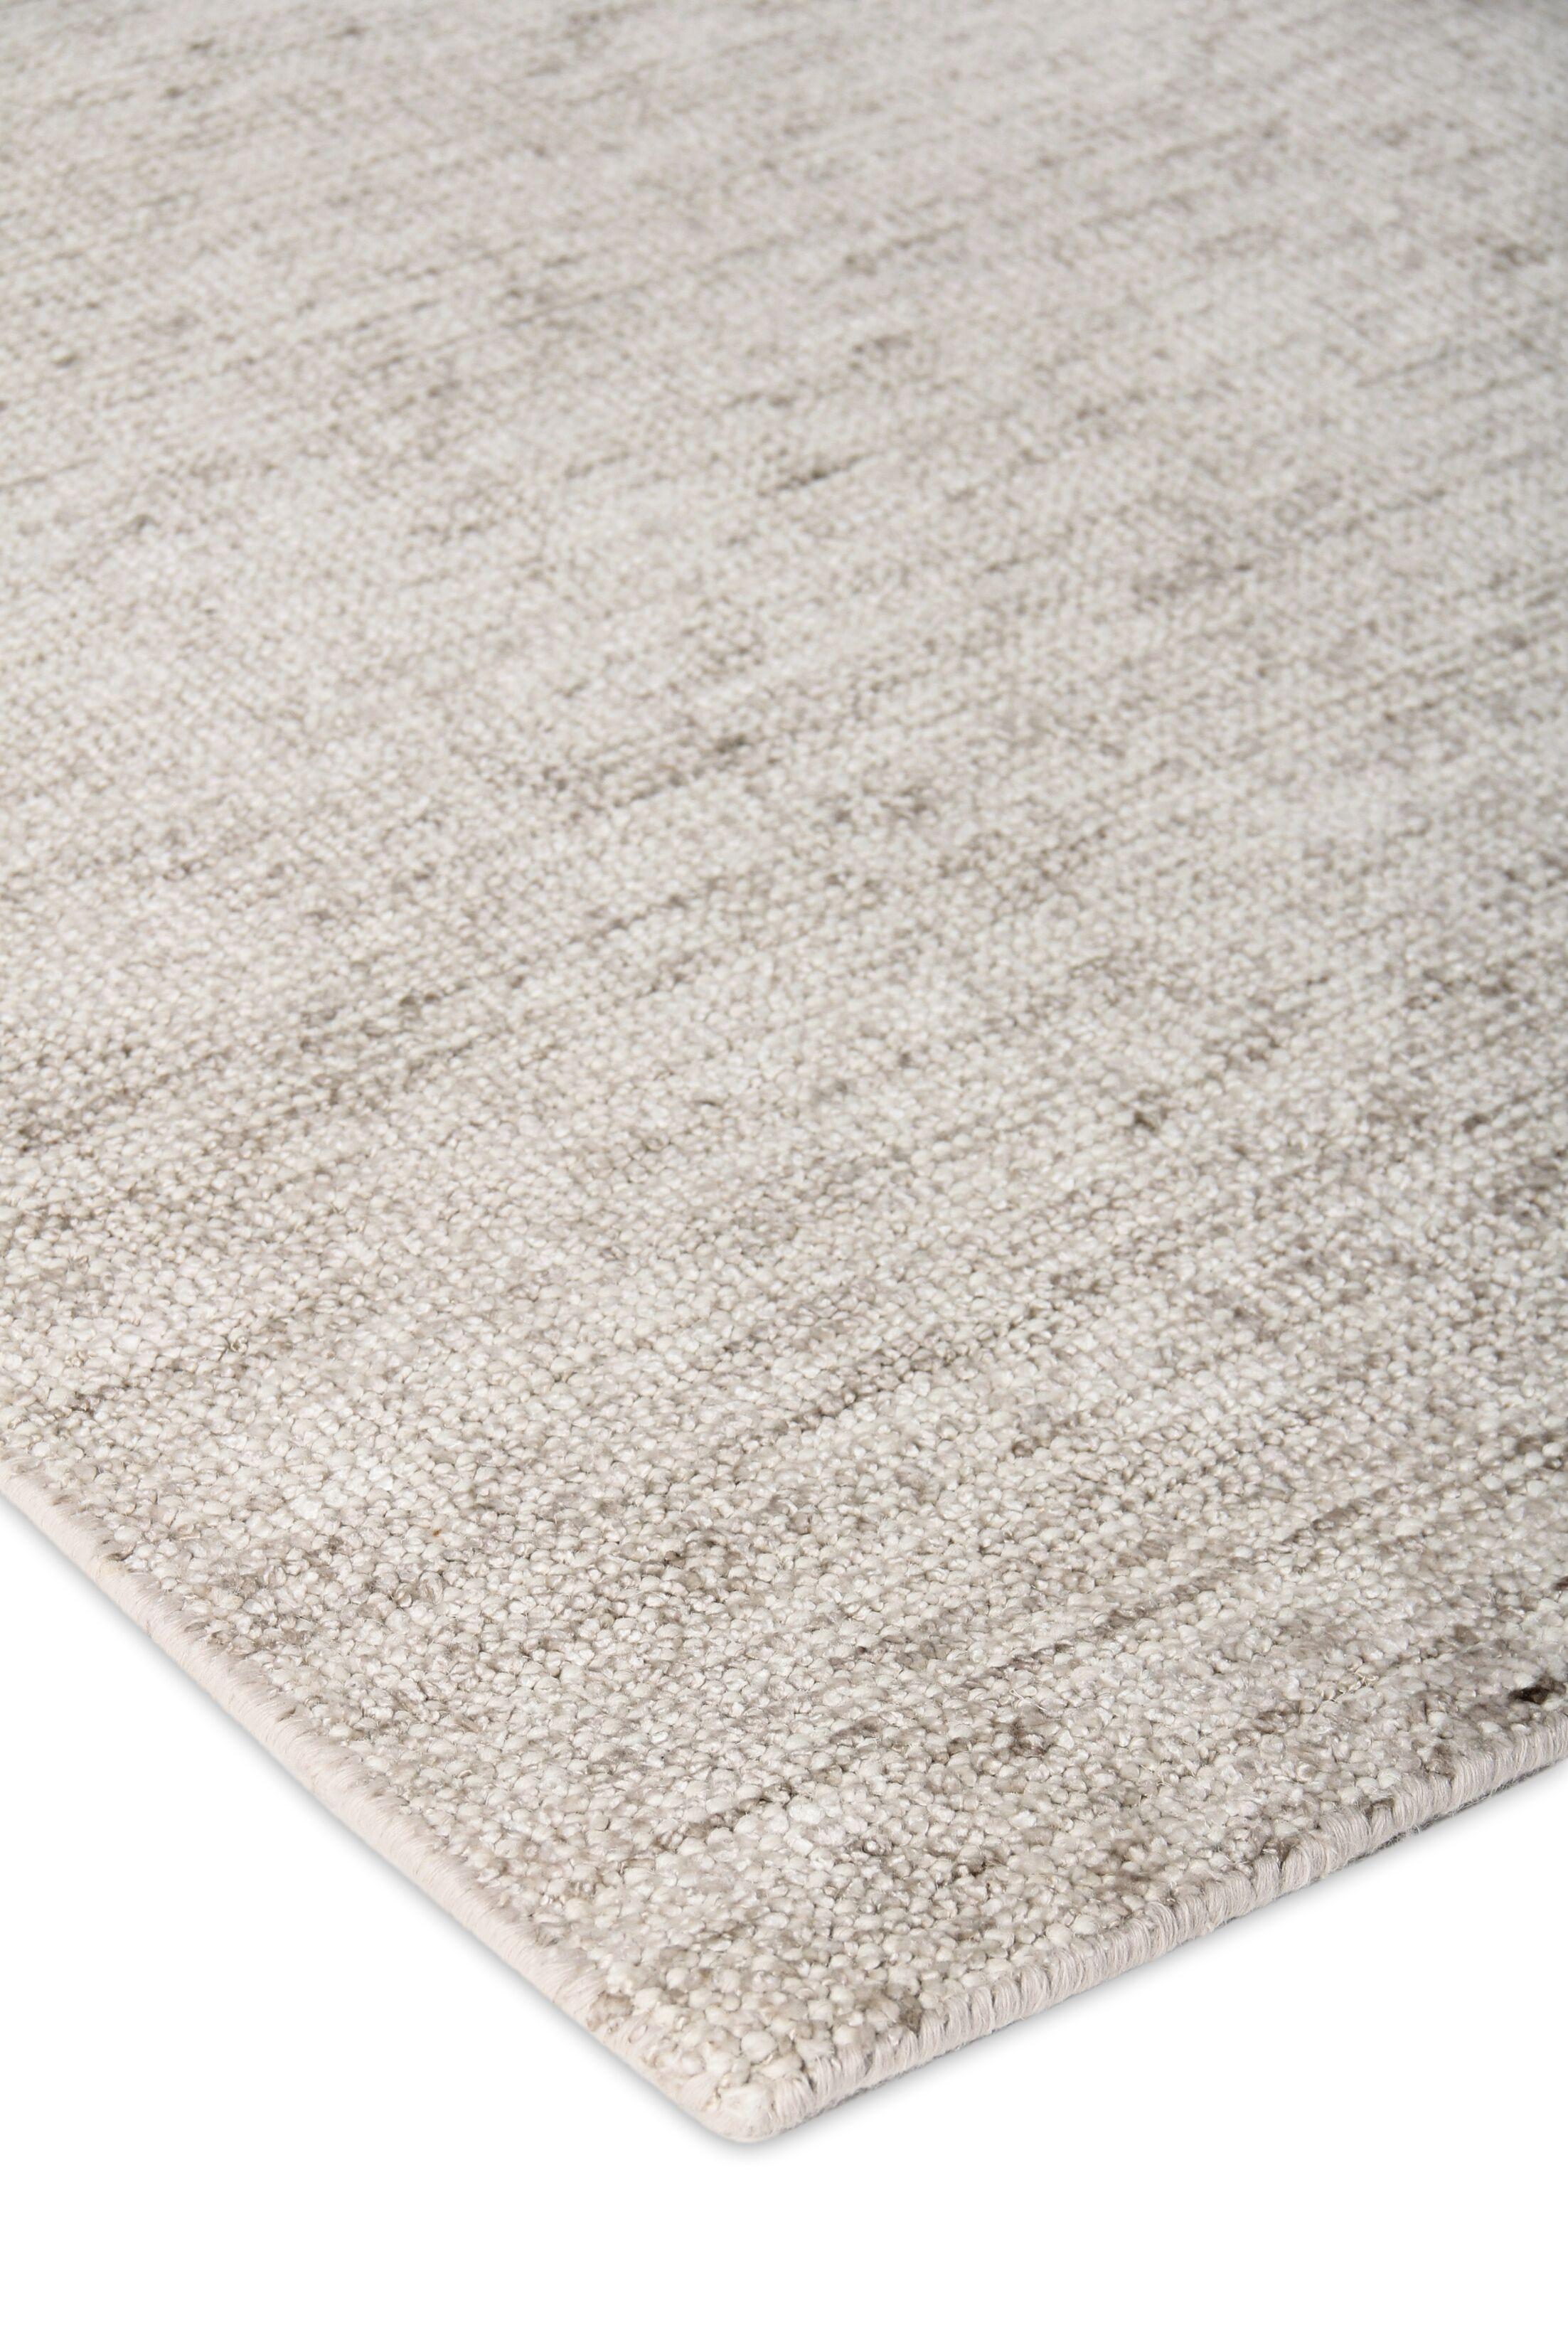 Catalina Hand Woven Beige Area Rug Rug Size: Rectangle 9' x 12'